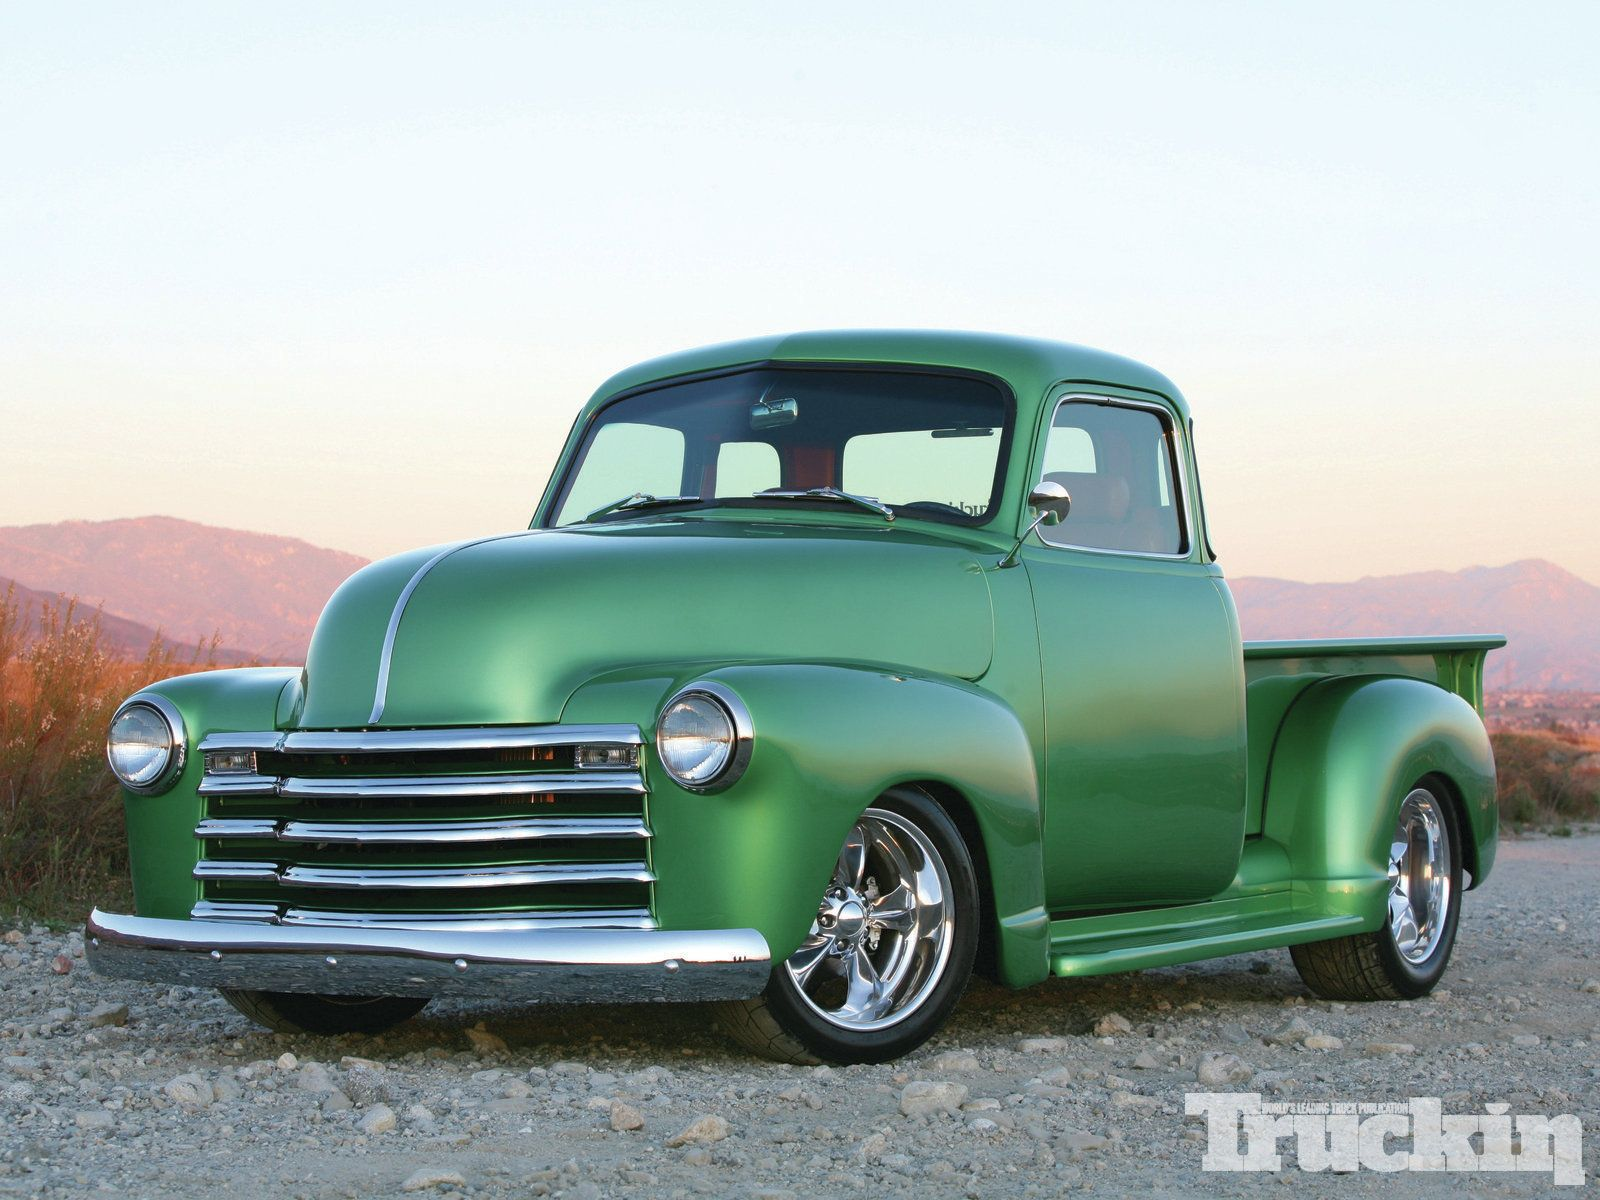 Smooth dash 55 chevy truck ideas pinterest 55 chevy truck chevy and cars